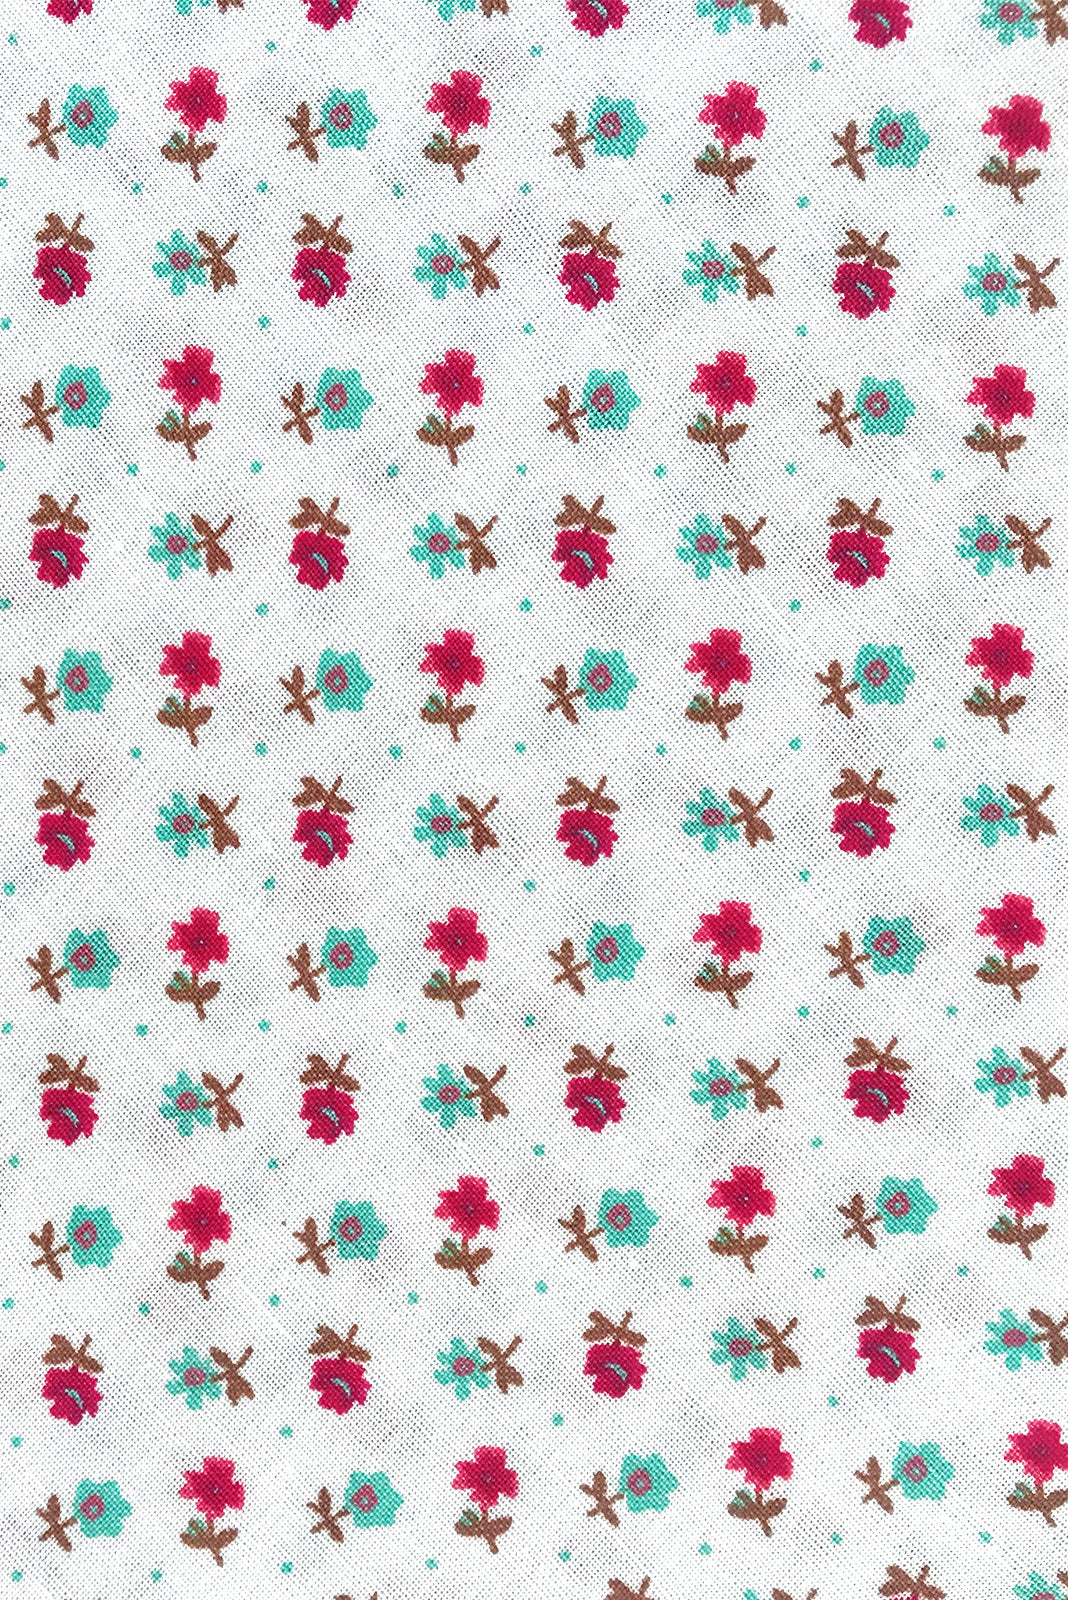 Fabric swatch of Ruby Tuesday Dotty White Dress featuring 100% viscose in white base with small blue and red floral print.